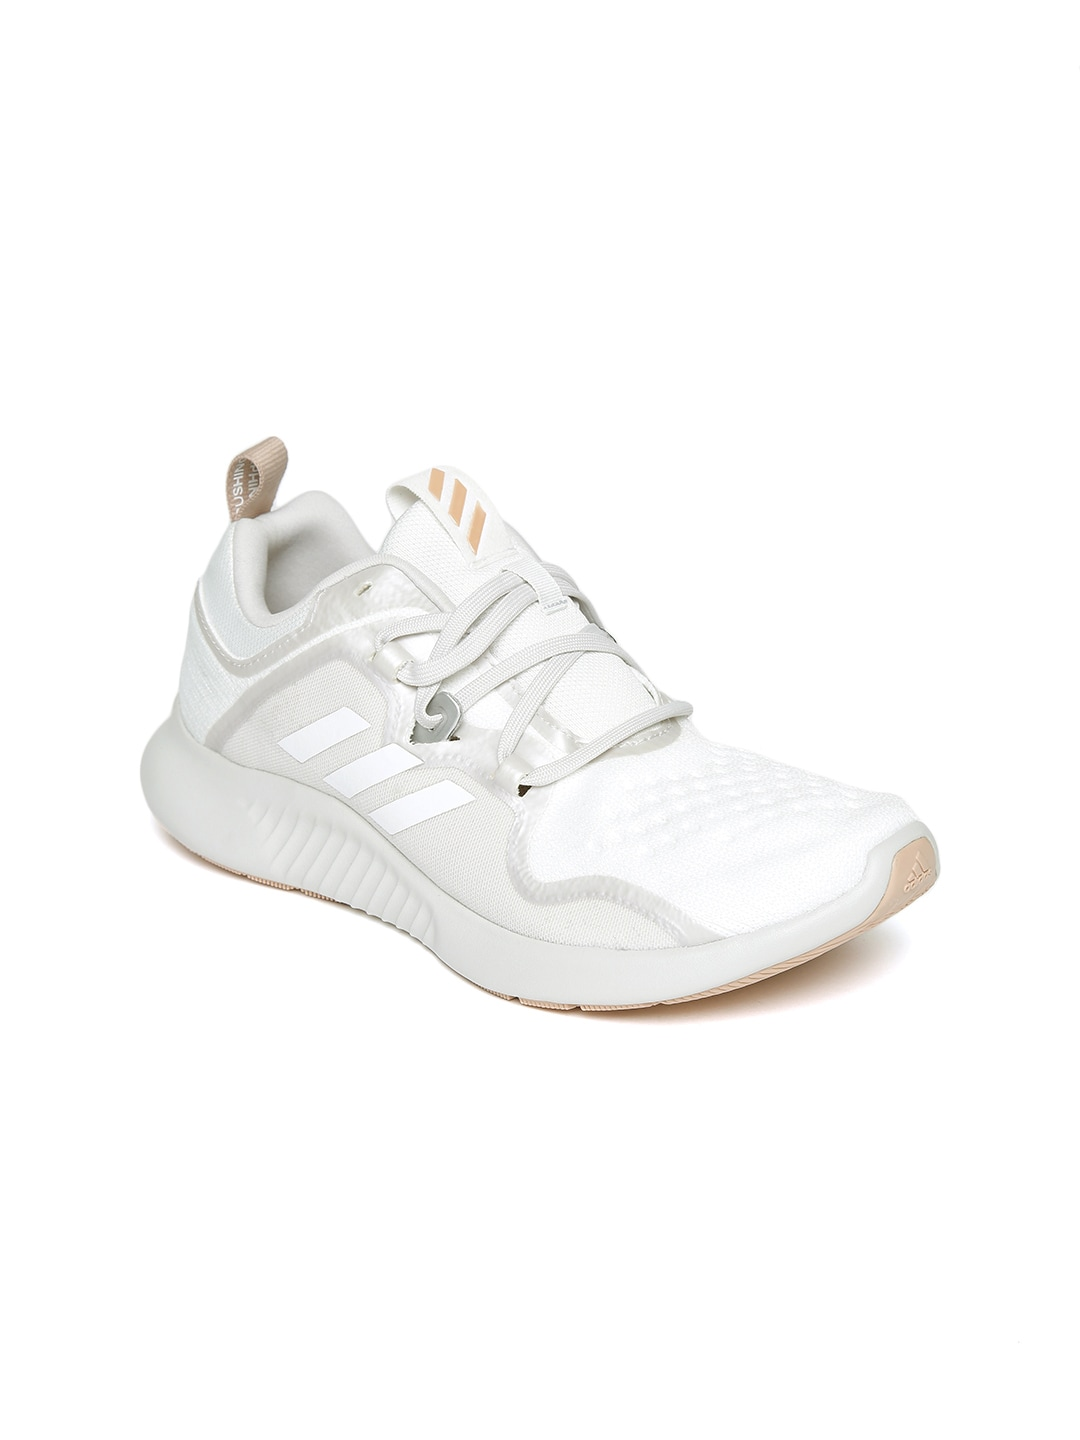 check out 5d091 487f5 Sports Puma Adidas Women Shoes - Buy Sports Puma Adidas Women Shoes online  in India